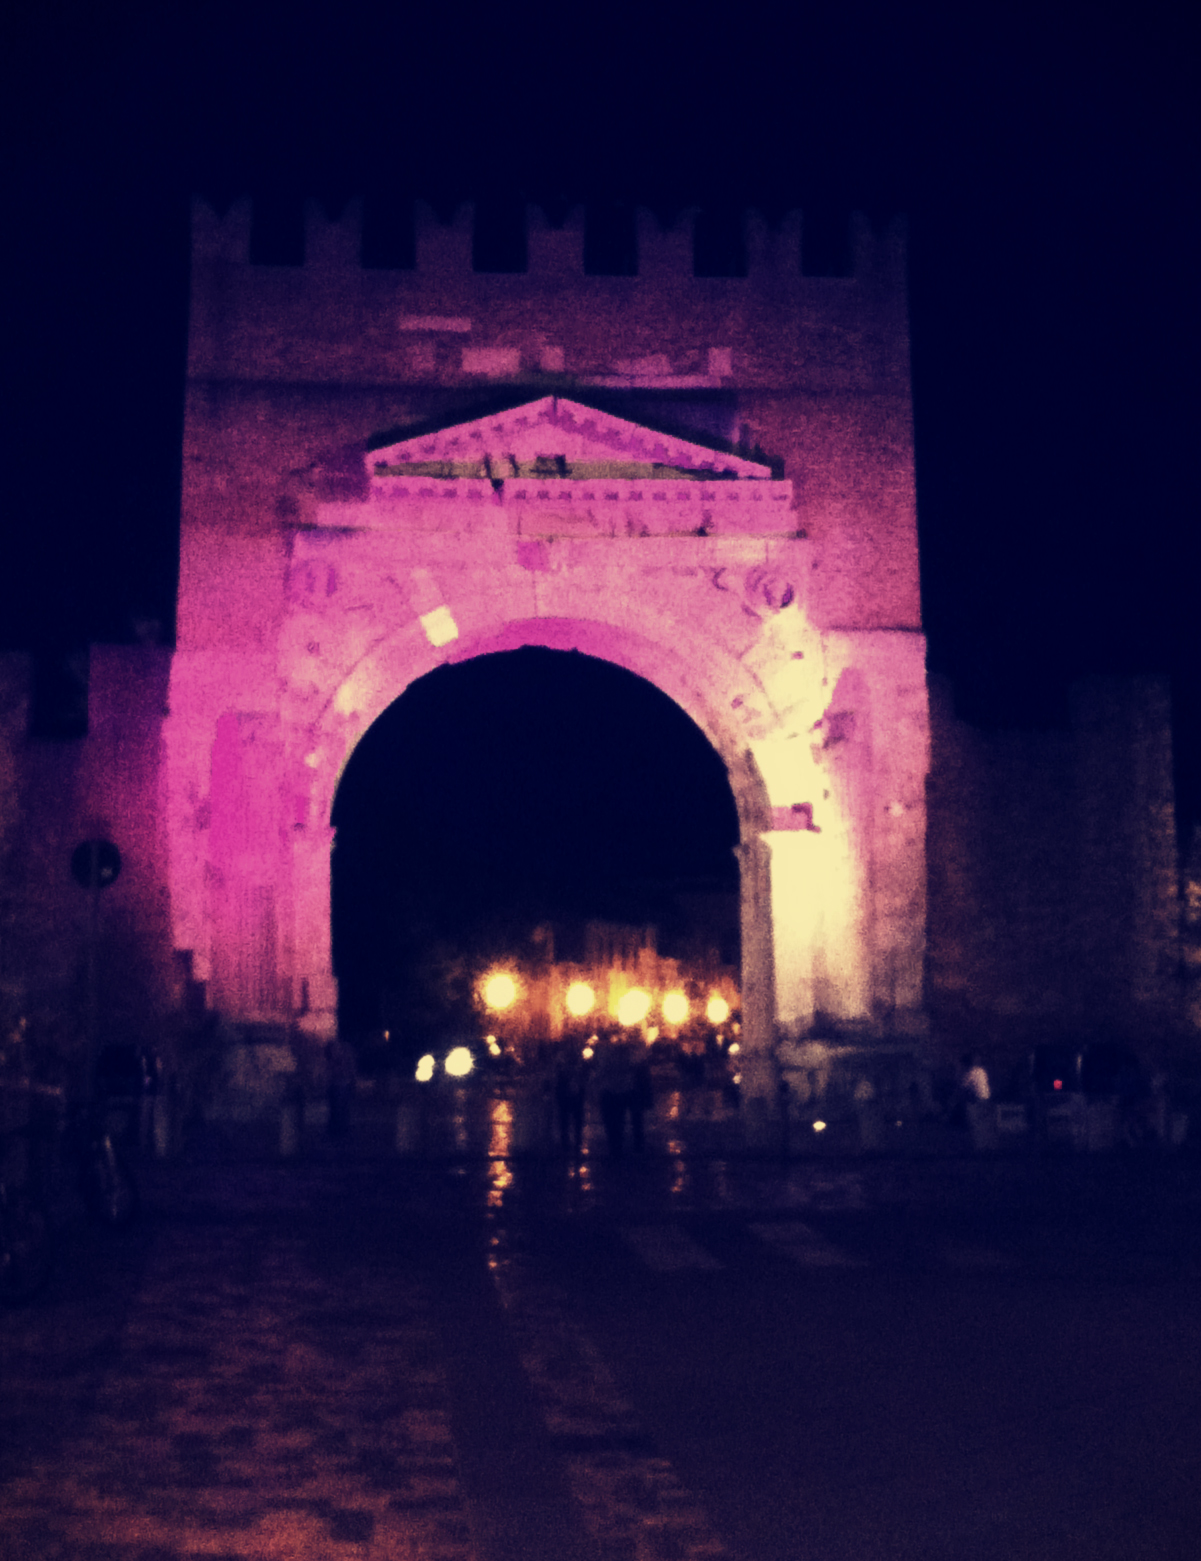 The Arco d'Augosto lit up in preparation for the Notte Rosa